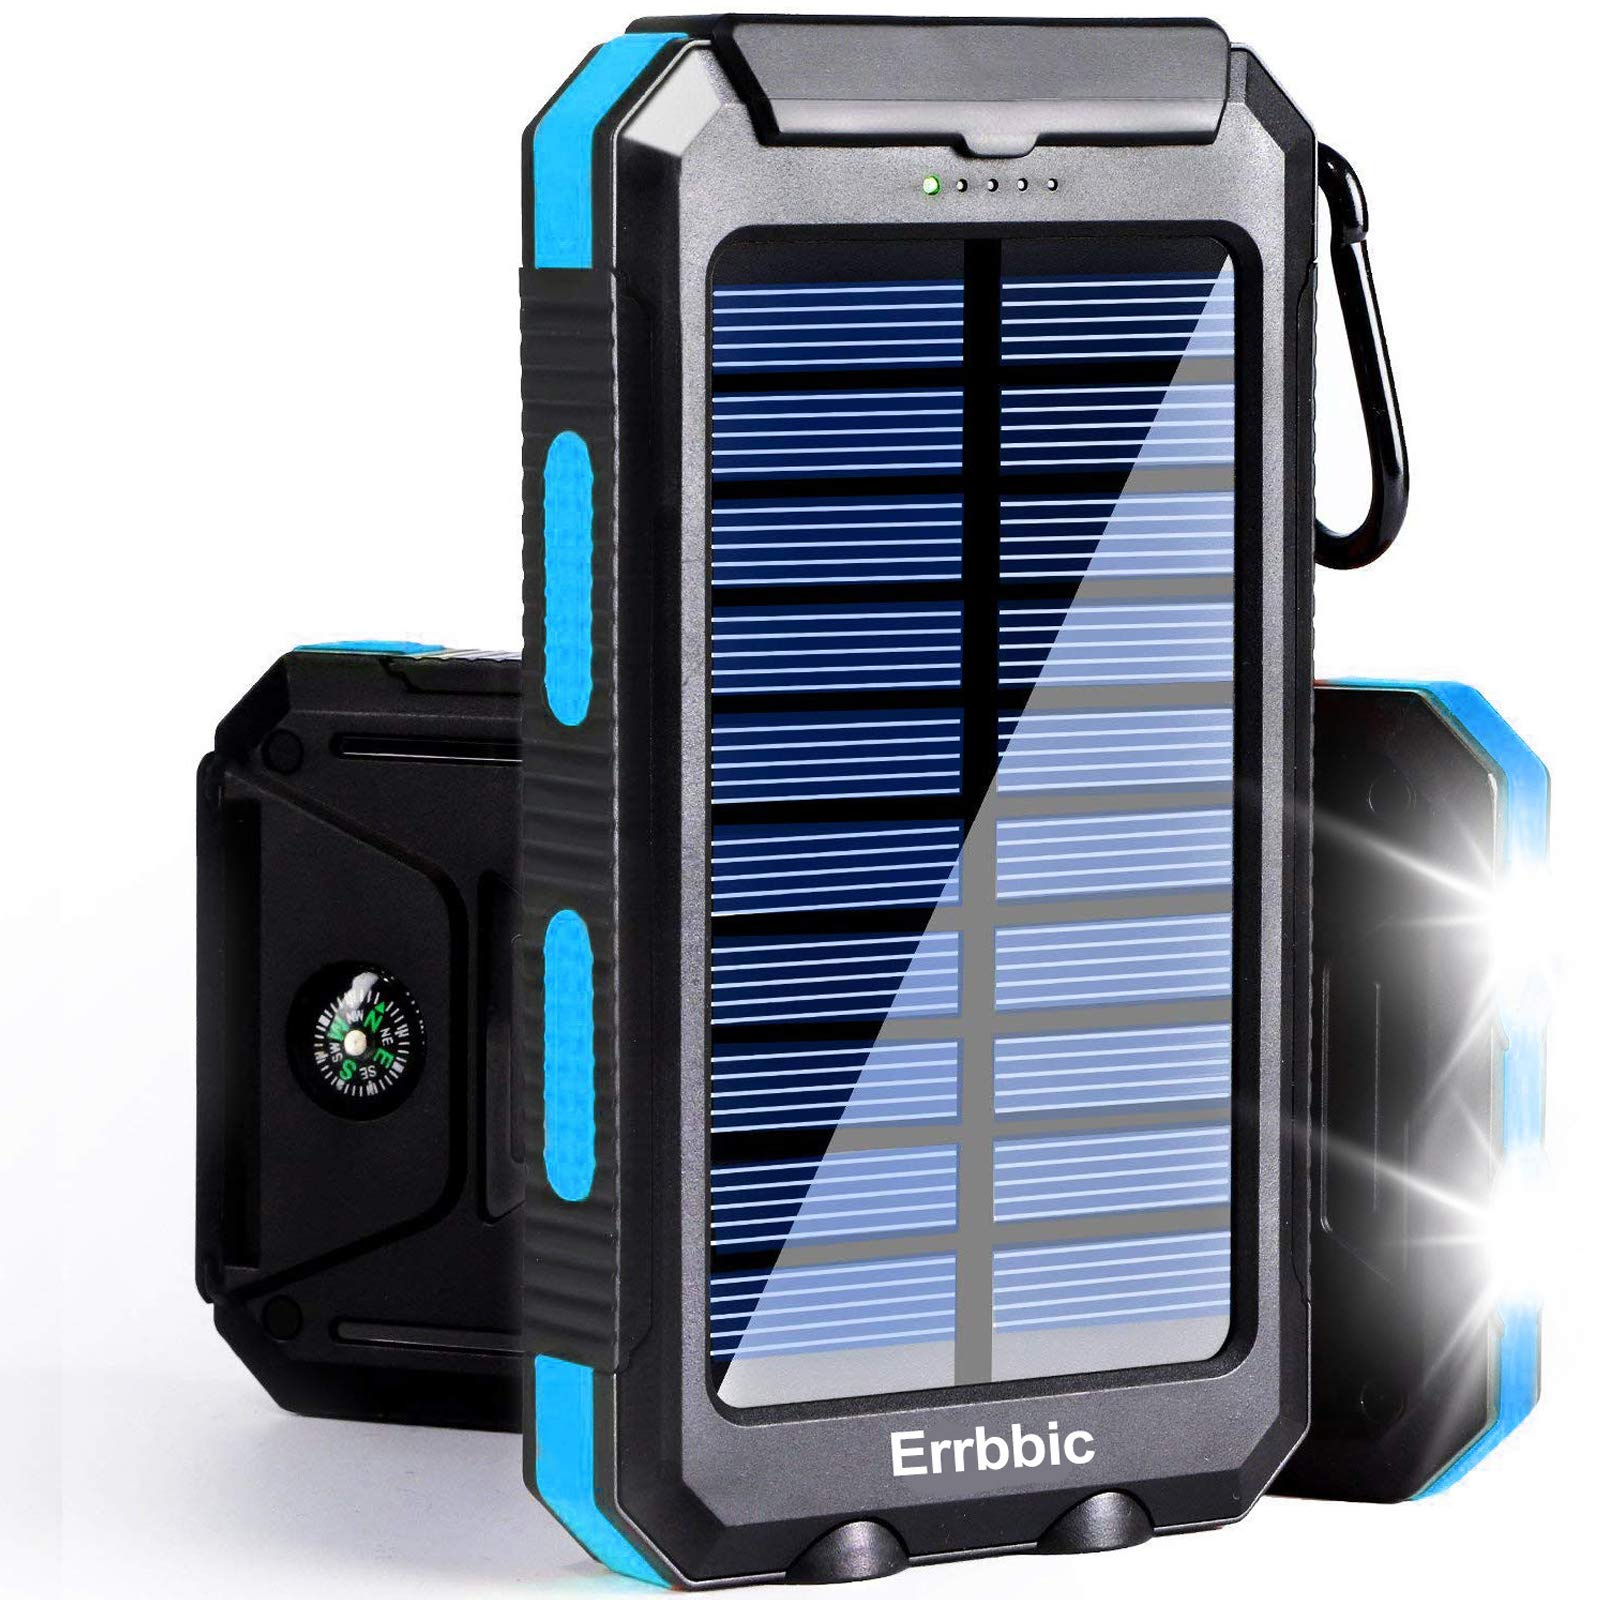 Solar Power Bank Portable Charger 20000mah Waterproof Battery Backup Charger Solar Panel Charger with Dual LED Flashlights and Compass for All CellPhones, Tablets, and Electronic Devices